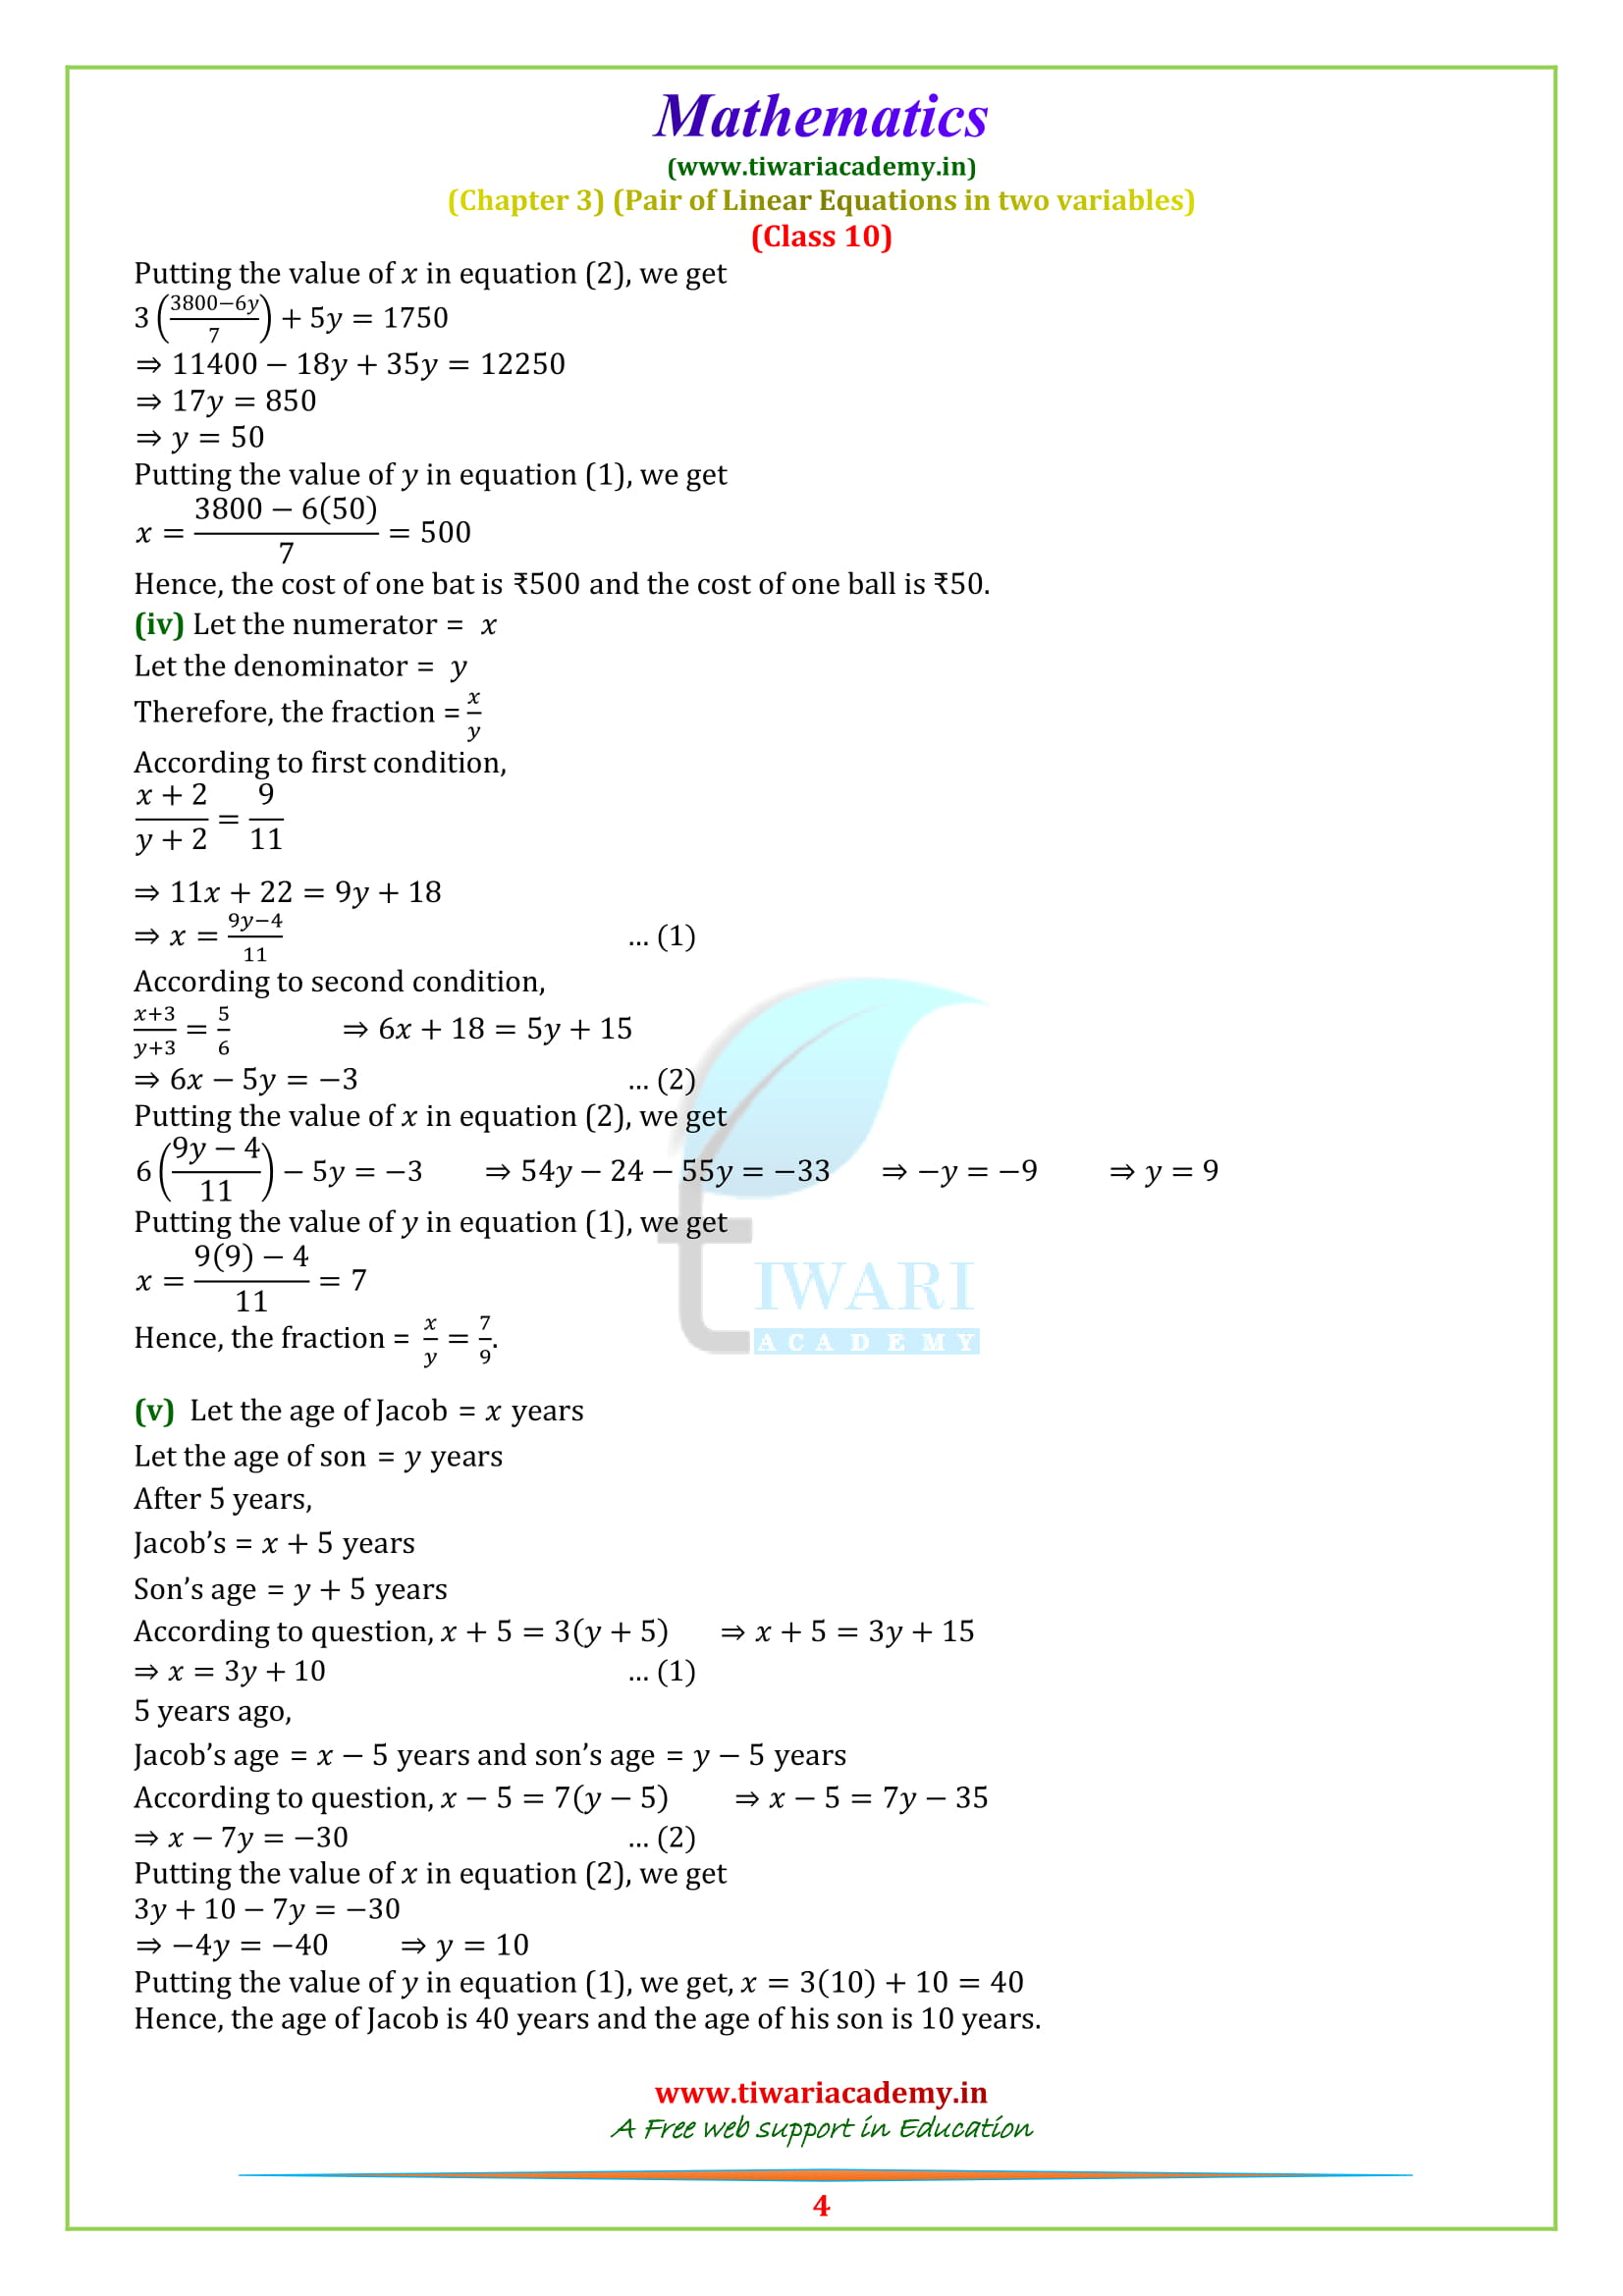 NCERT Solutions for Class 10 Maths Exercise 3.3 question 3